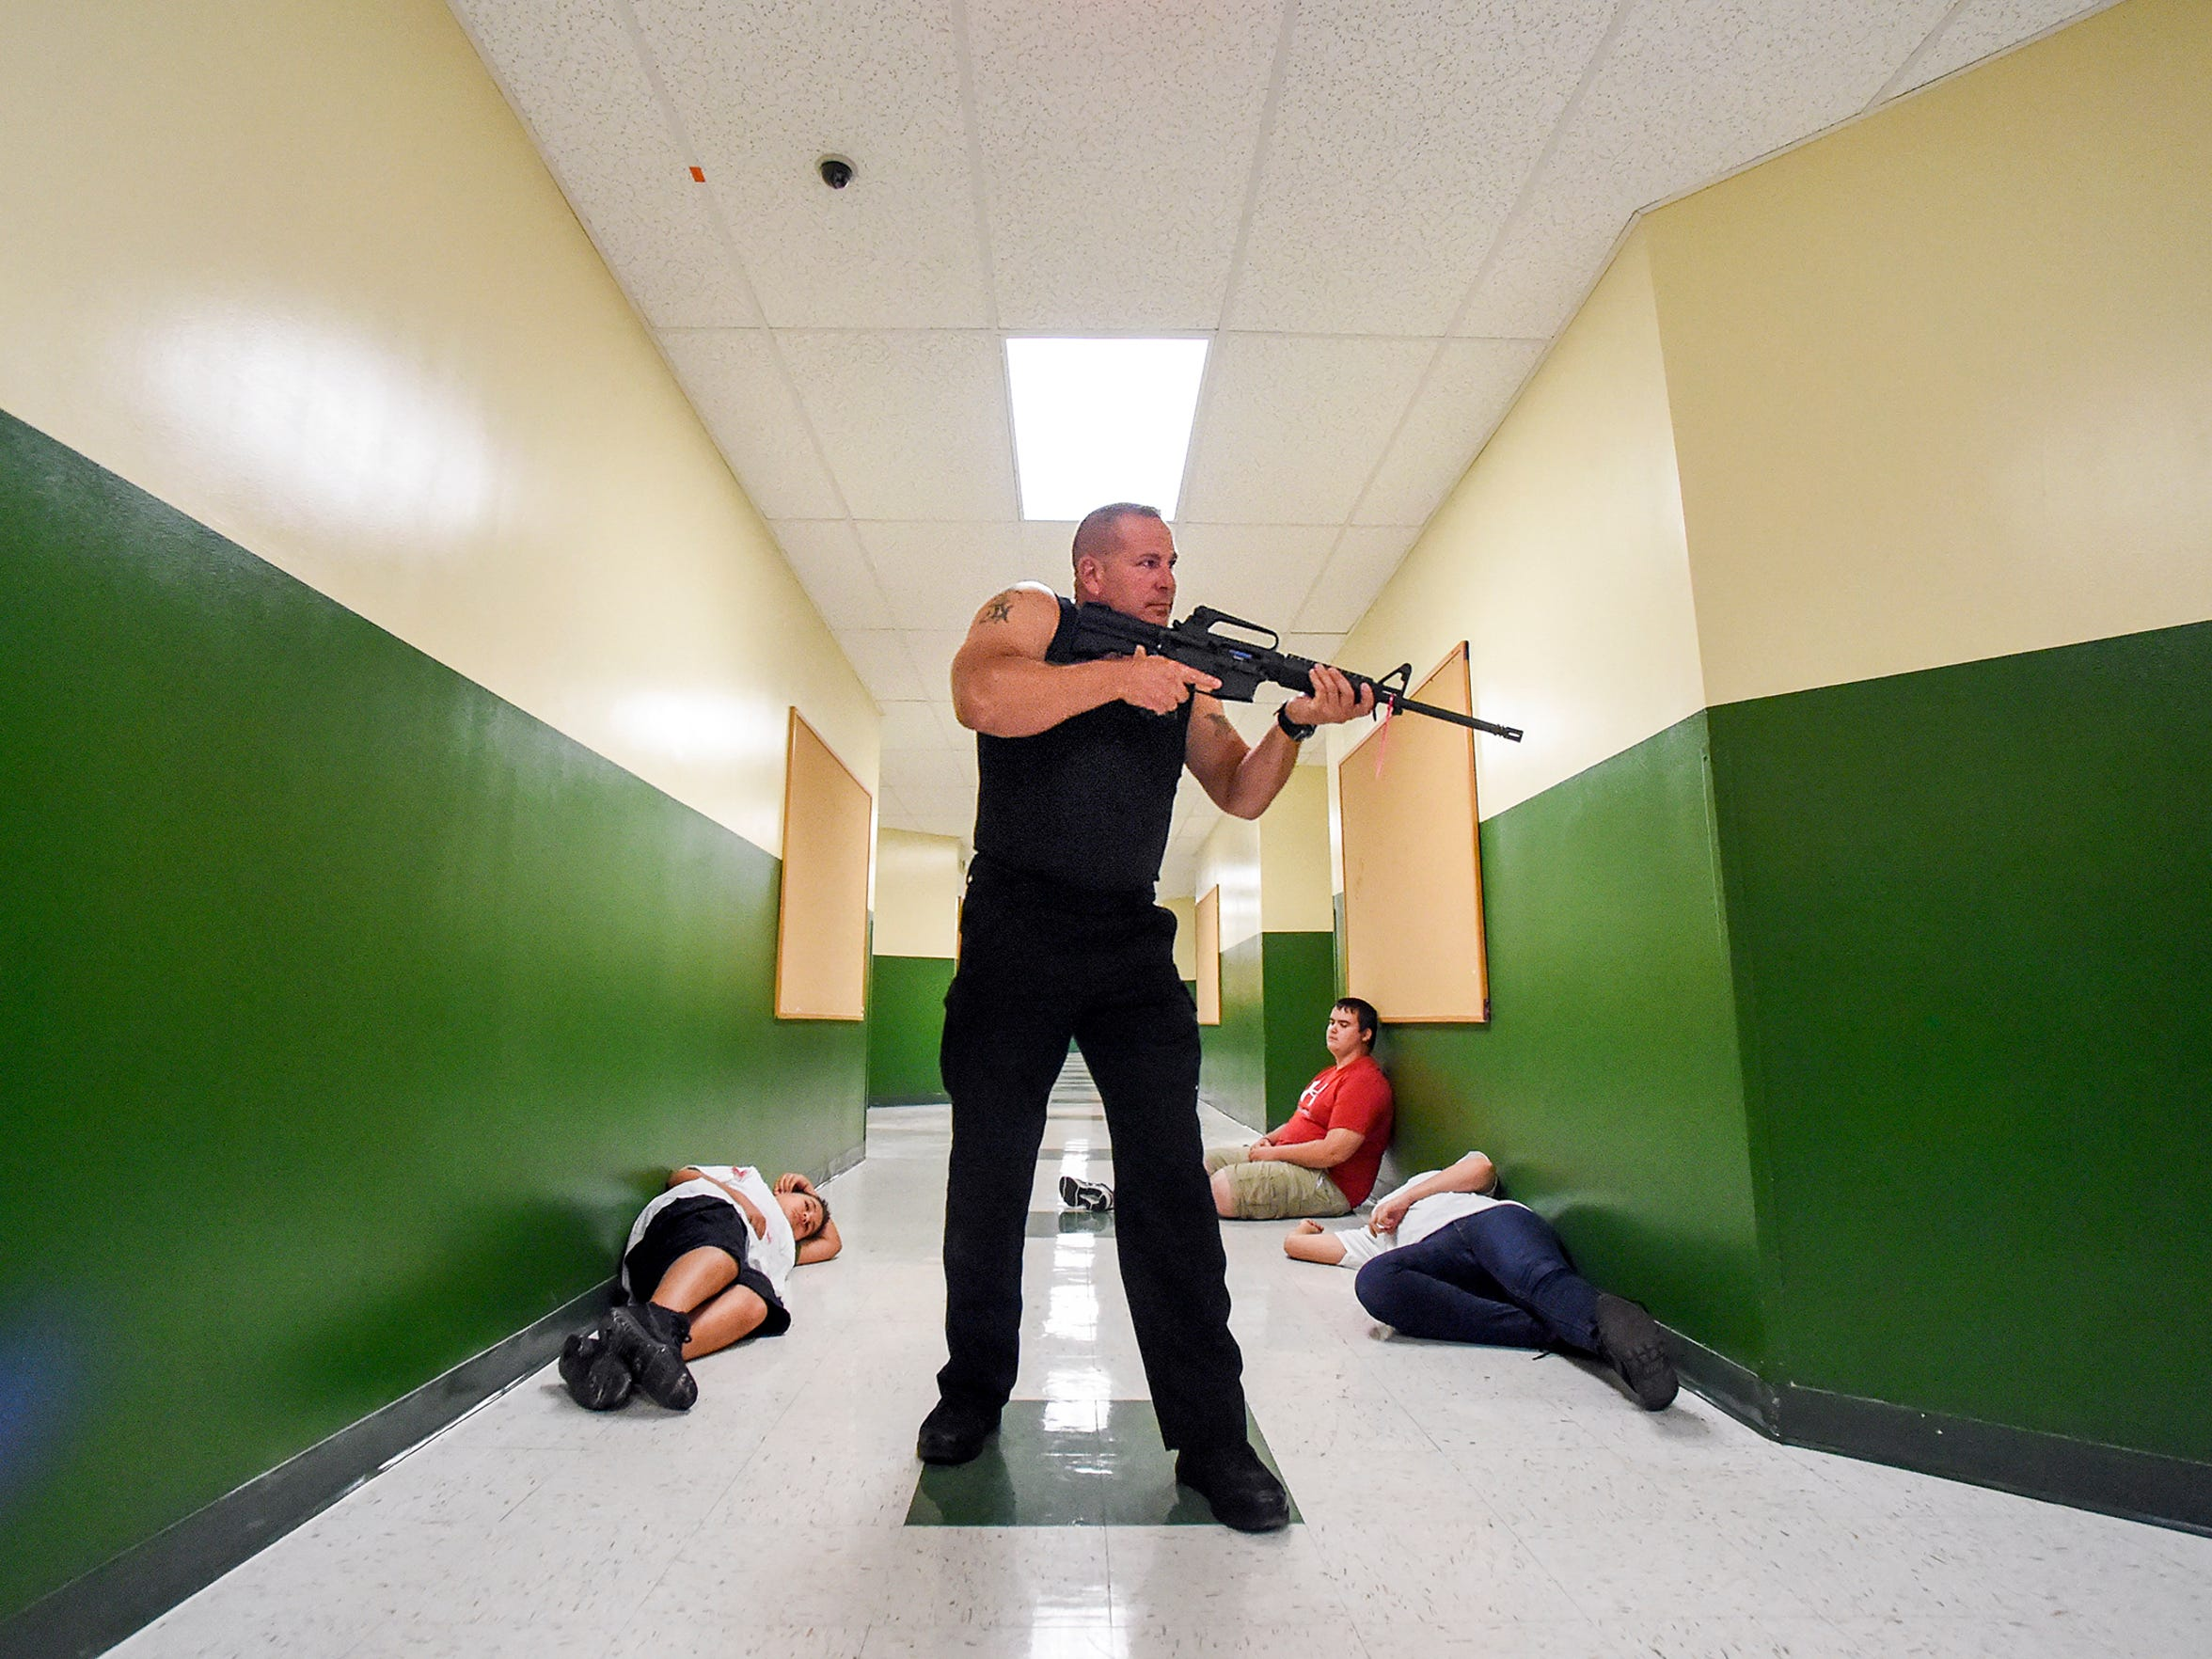 Port St. Lucie Police Officer Chris Kneidel plays the